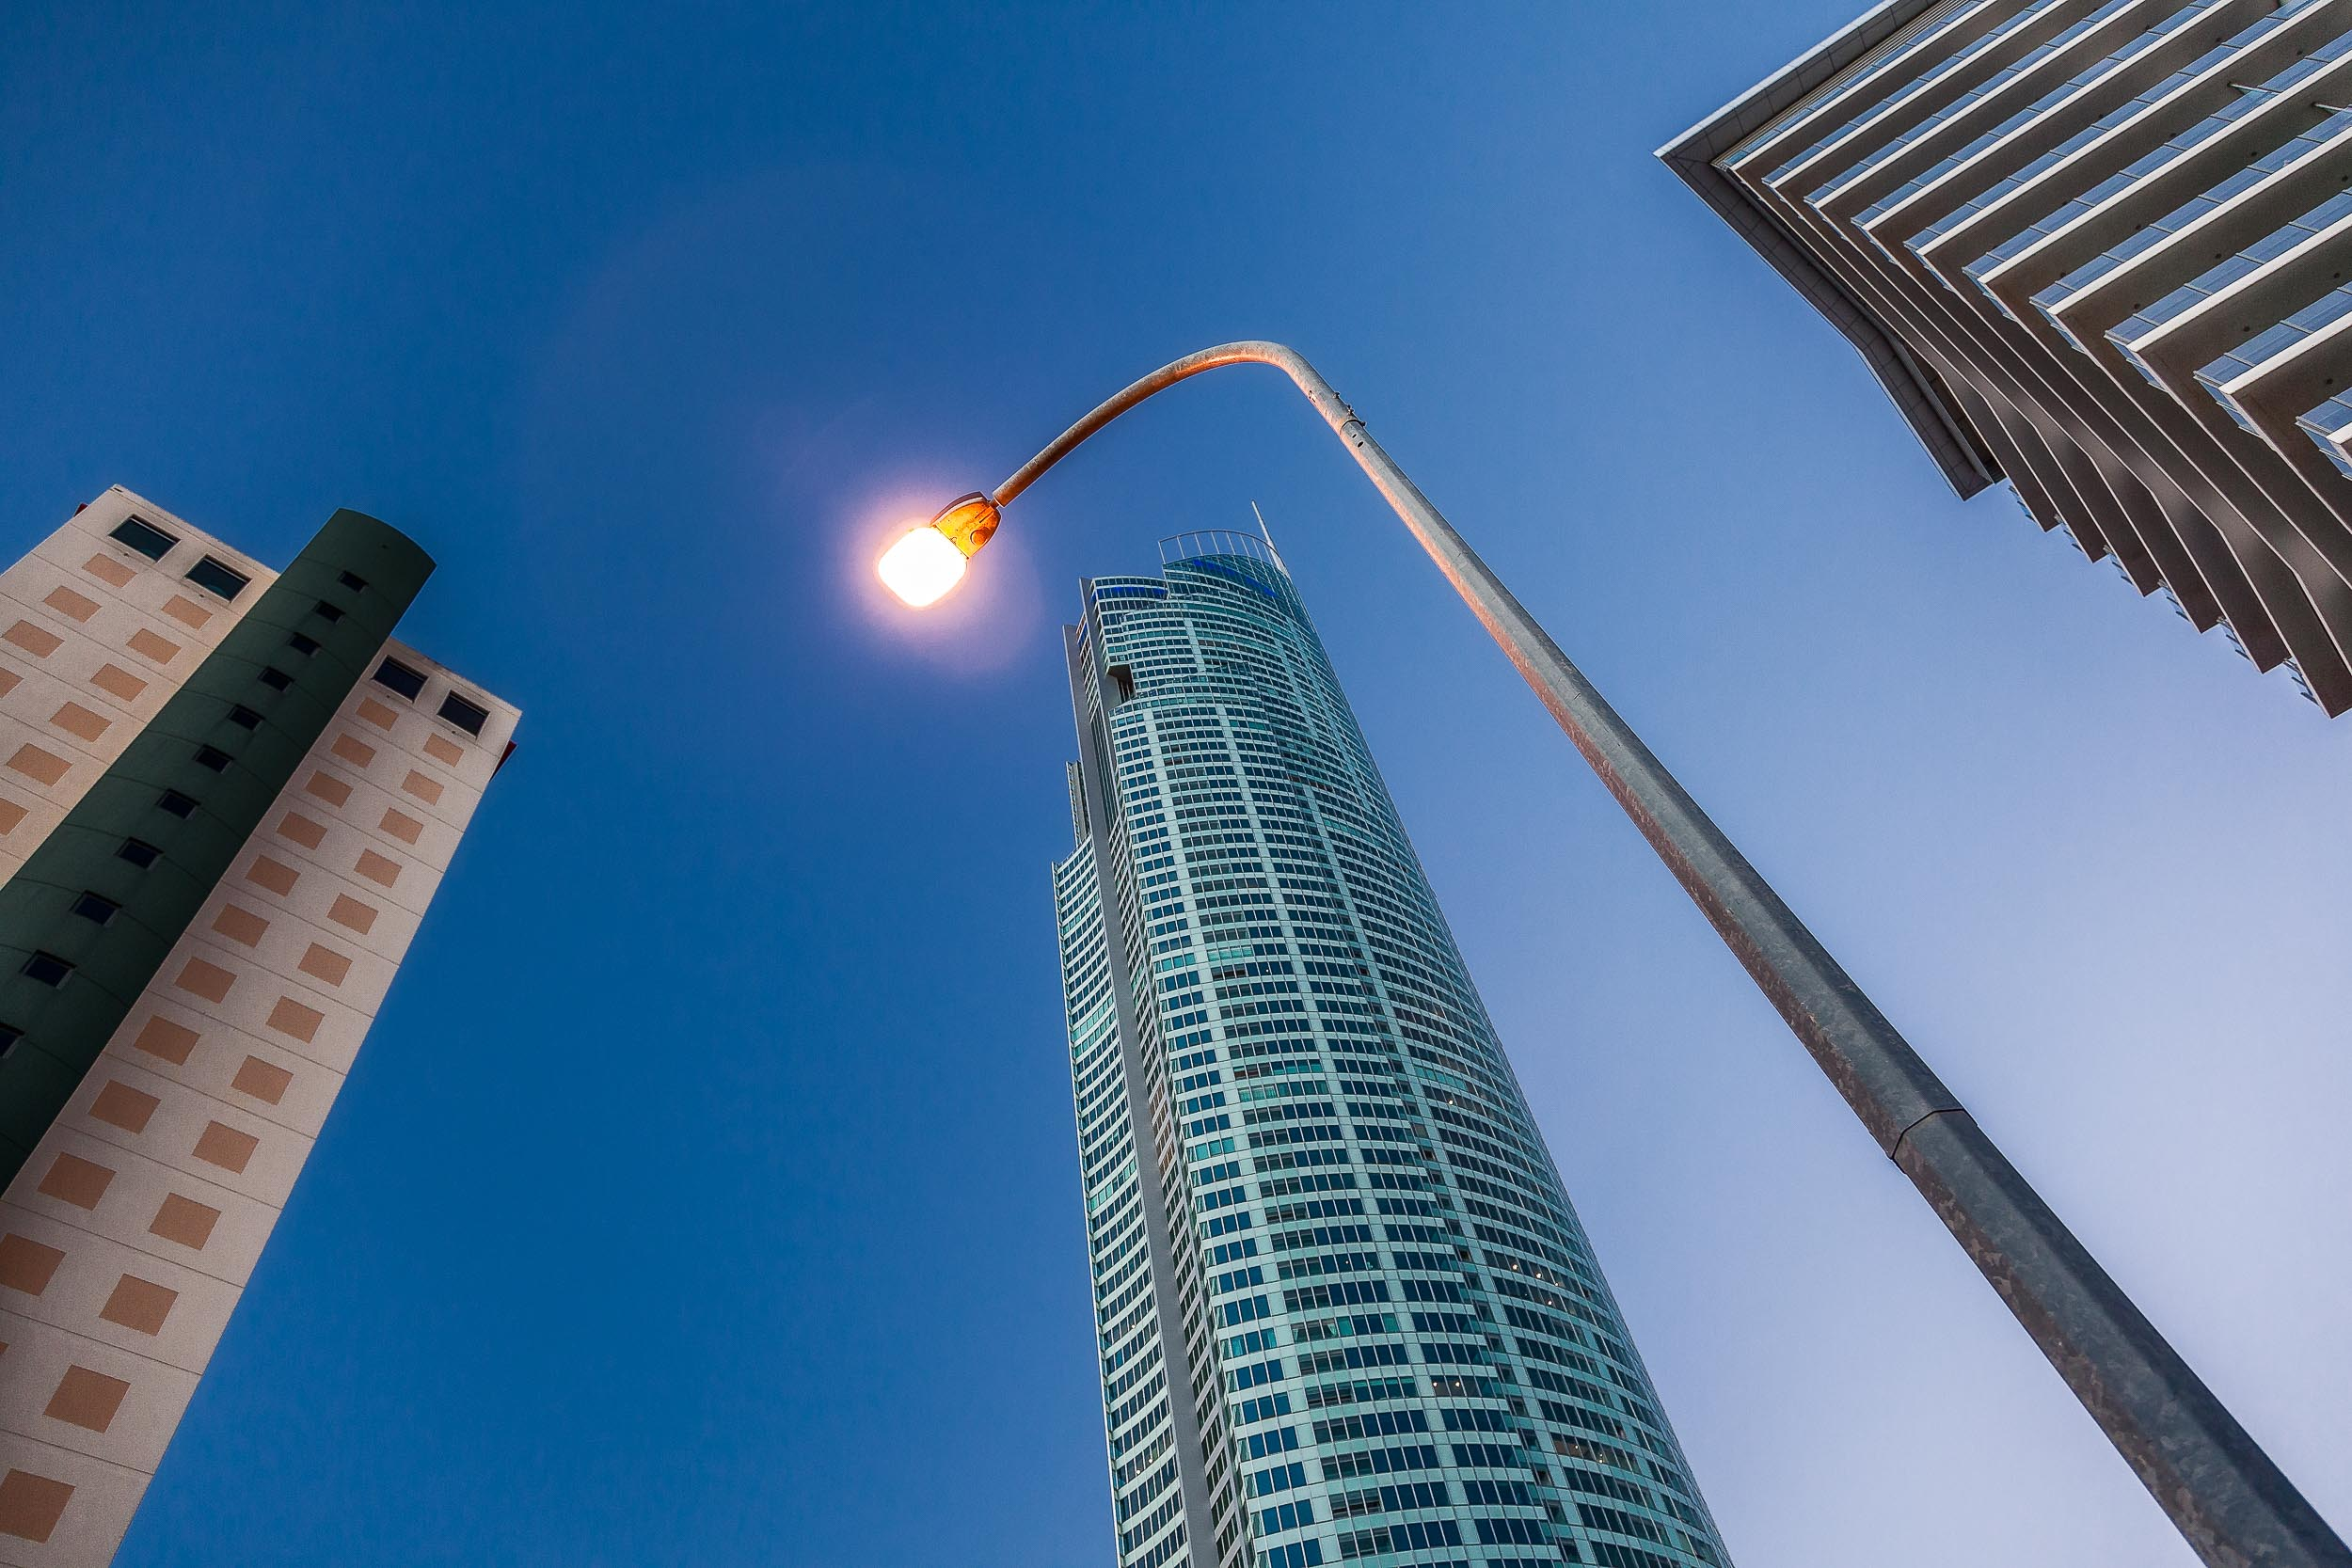 An overhead  street light  frames the iconic  Q1 Resort and Spa  in  Surfers Paradise  on the  Gold Coast  in  Queensland, Australia .